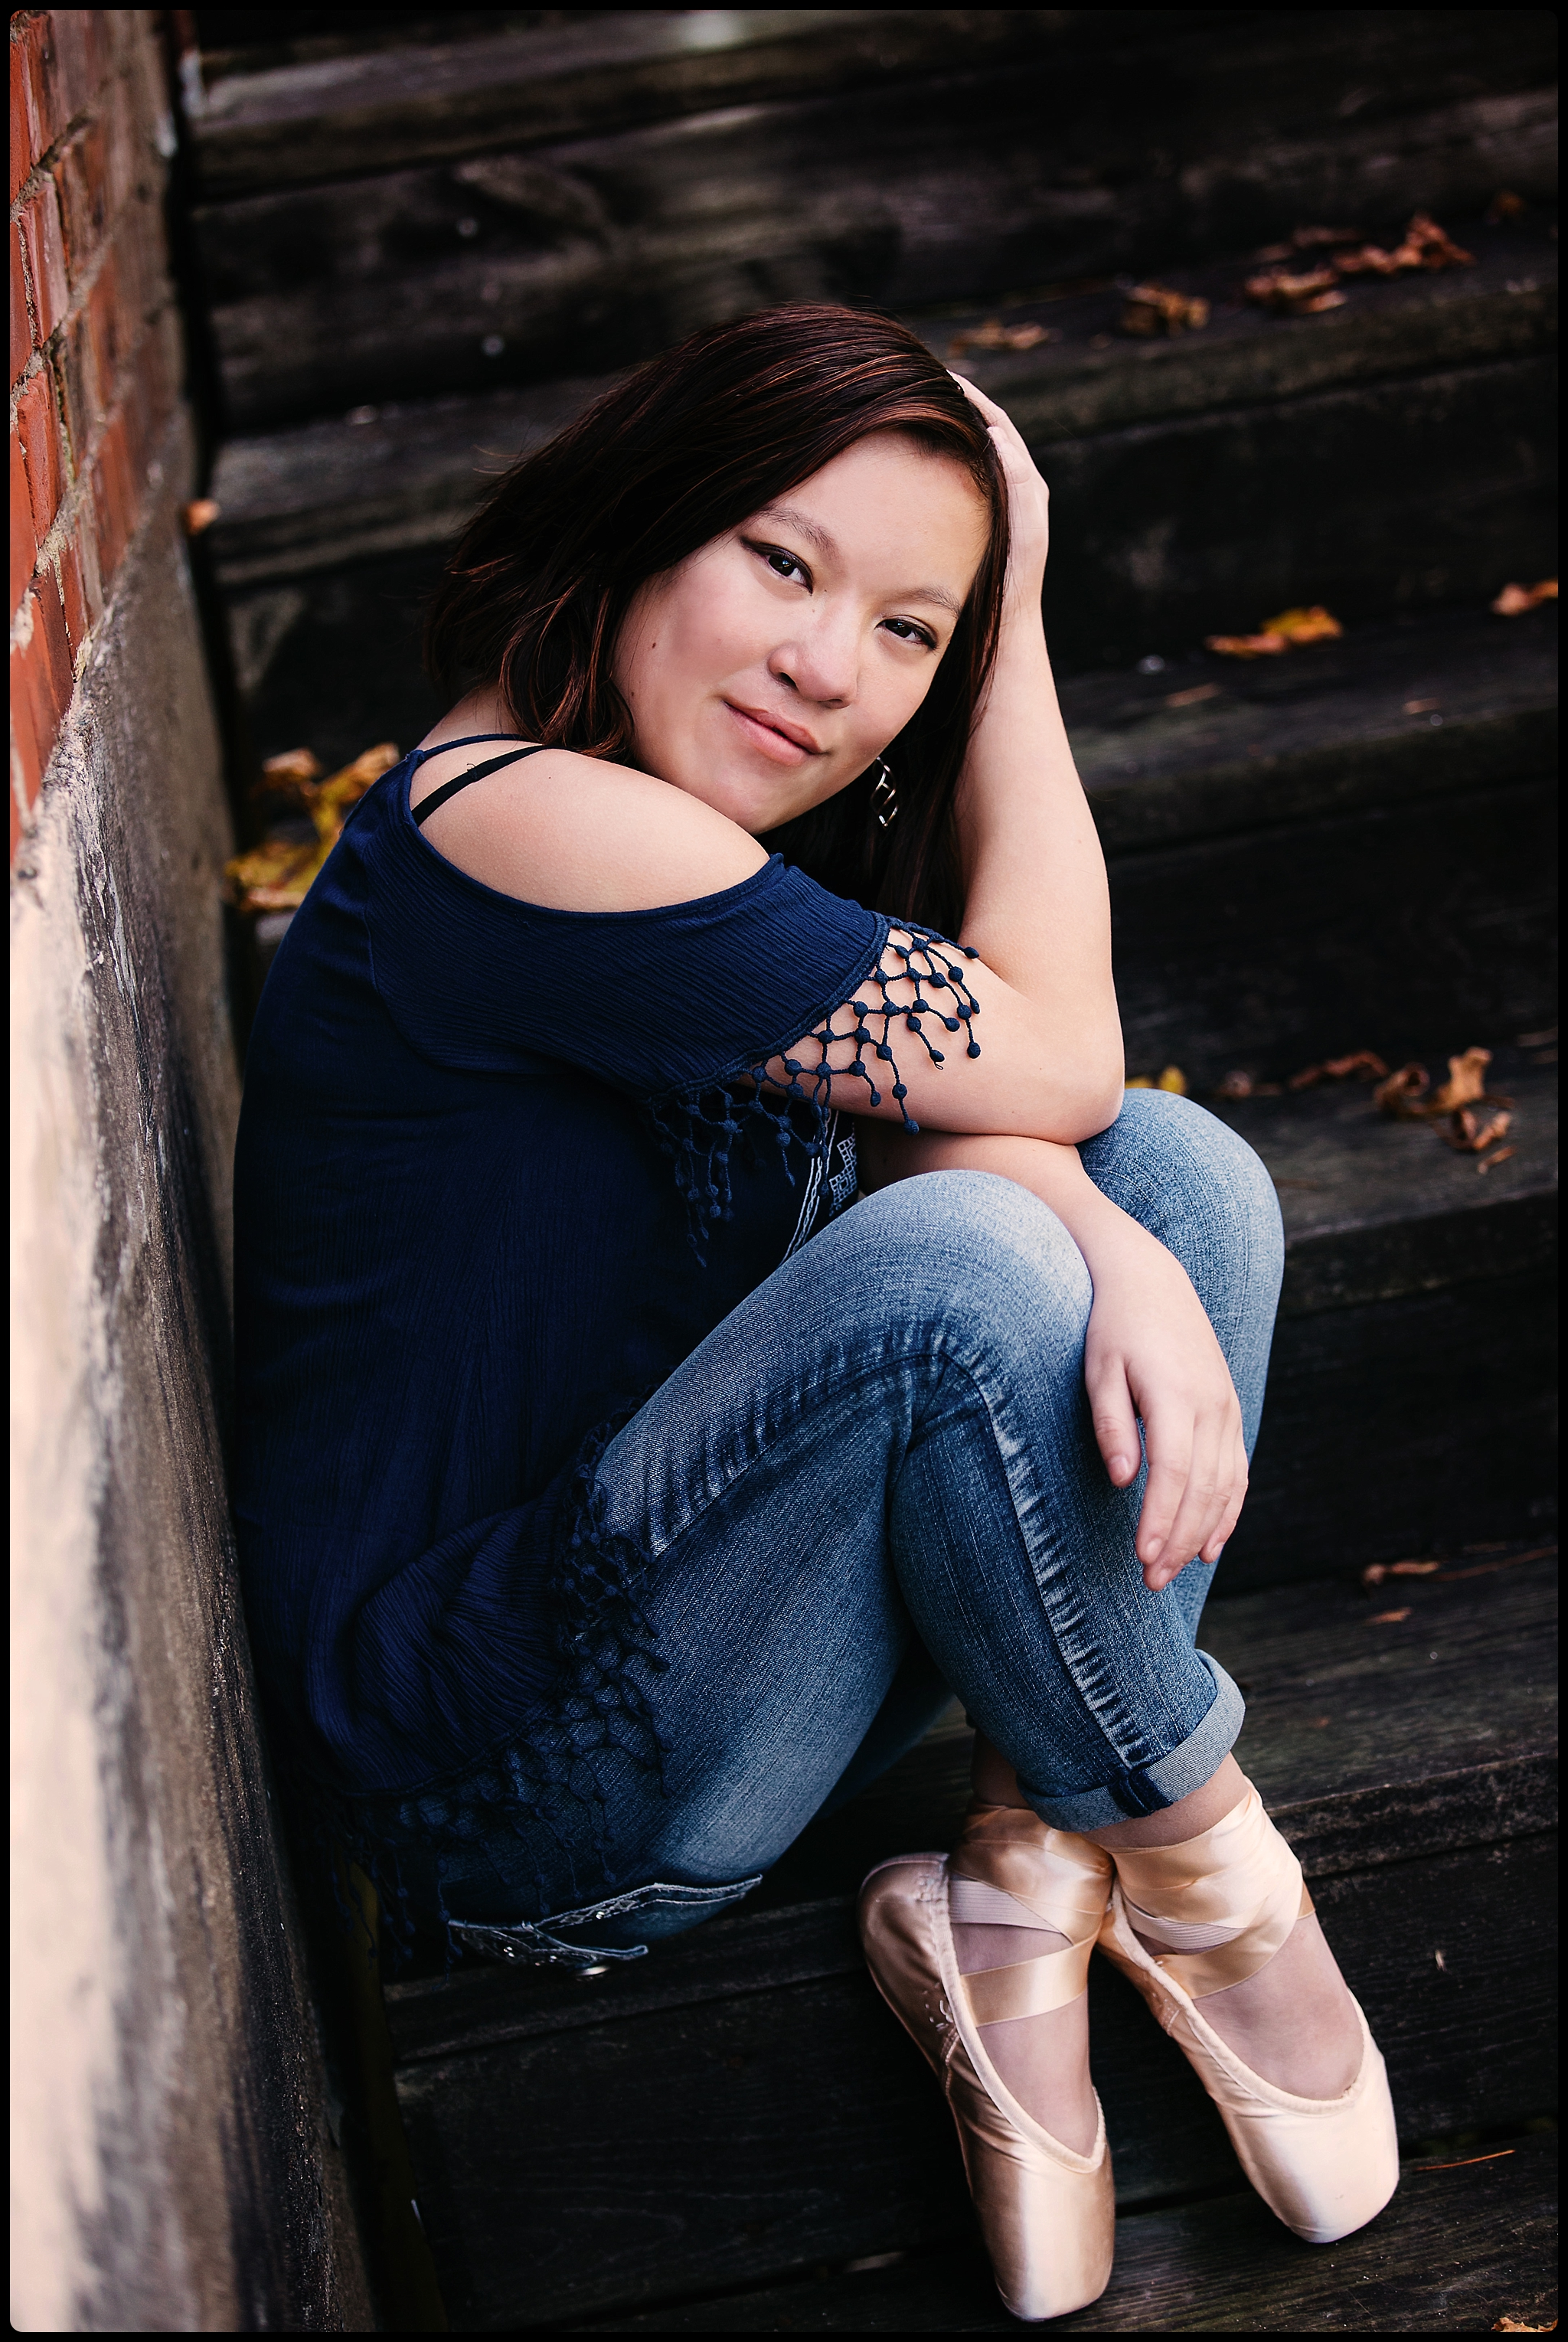 wisconsin-rapids-senior-pictures-Bobbi-K-Photography_0028.jpg